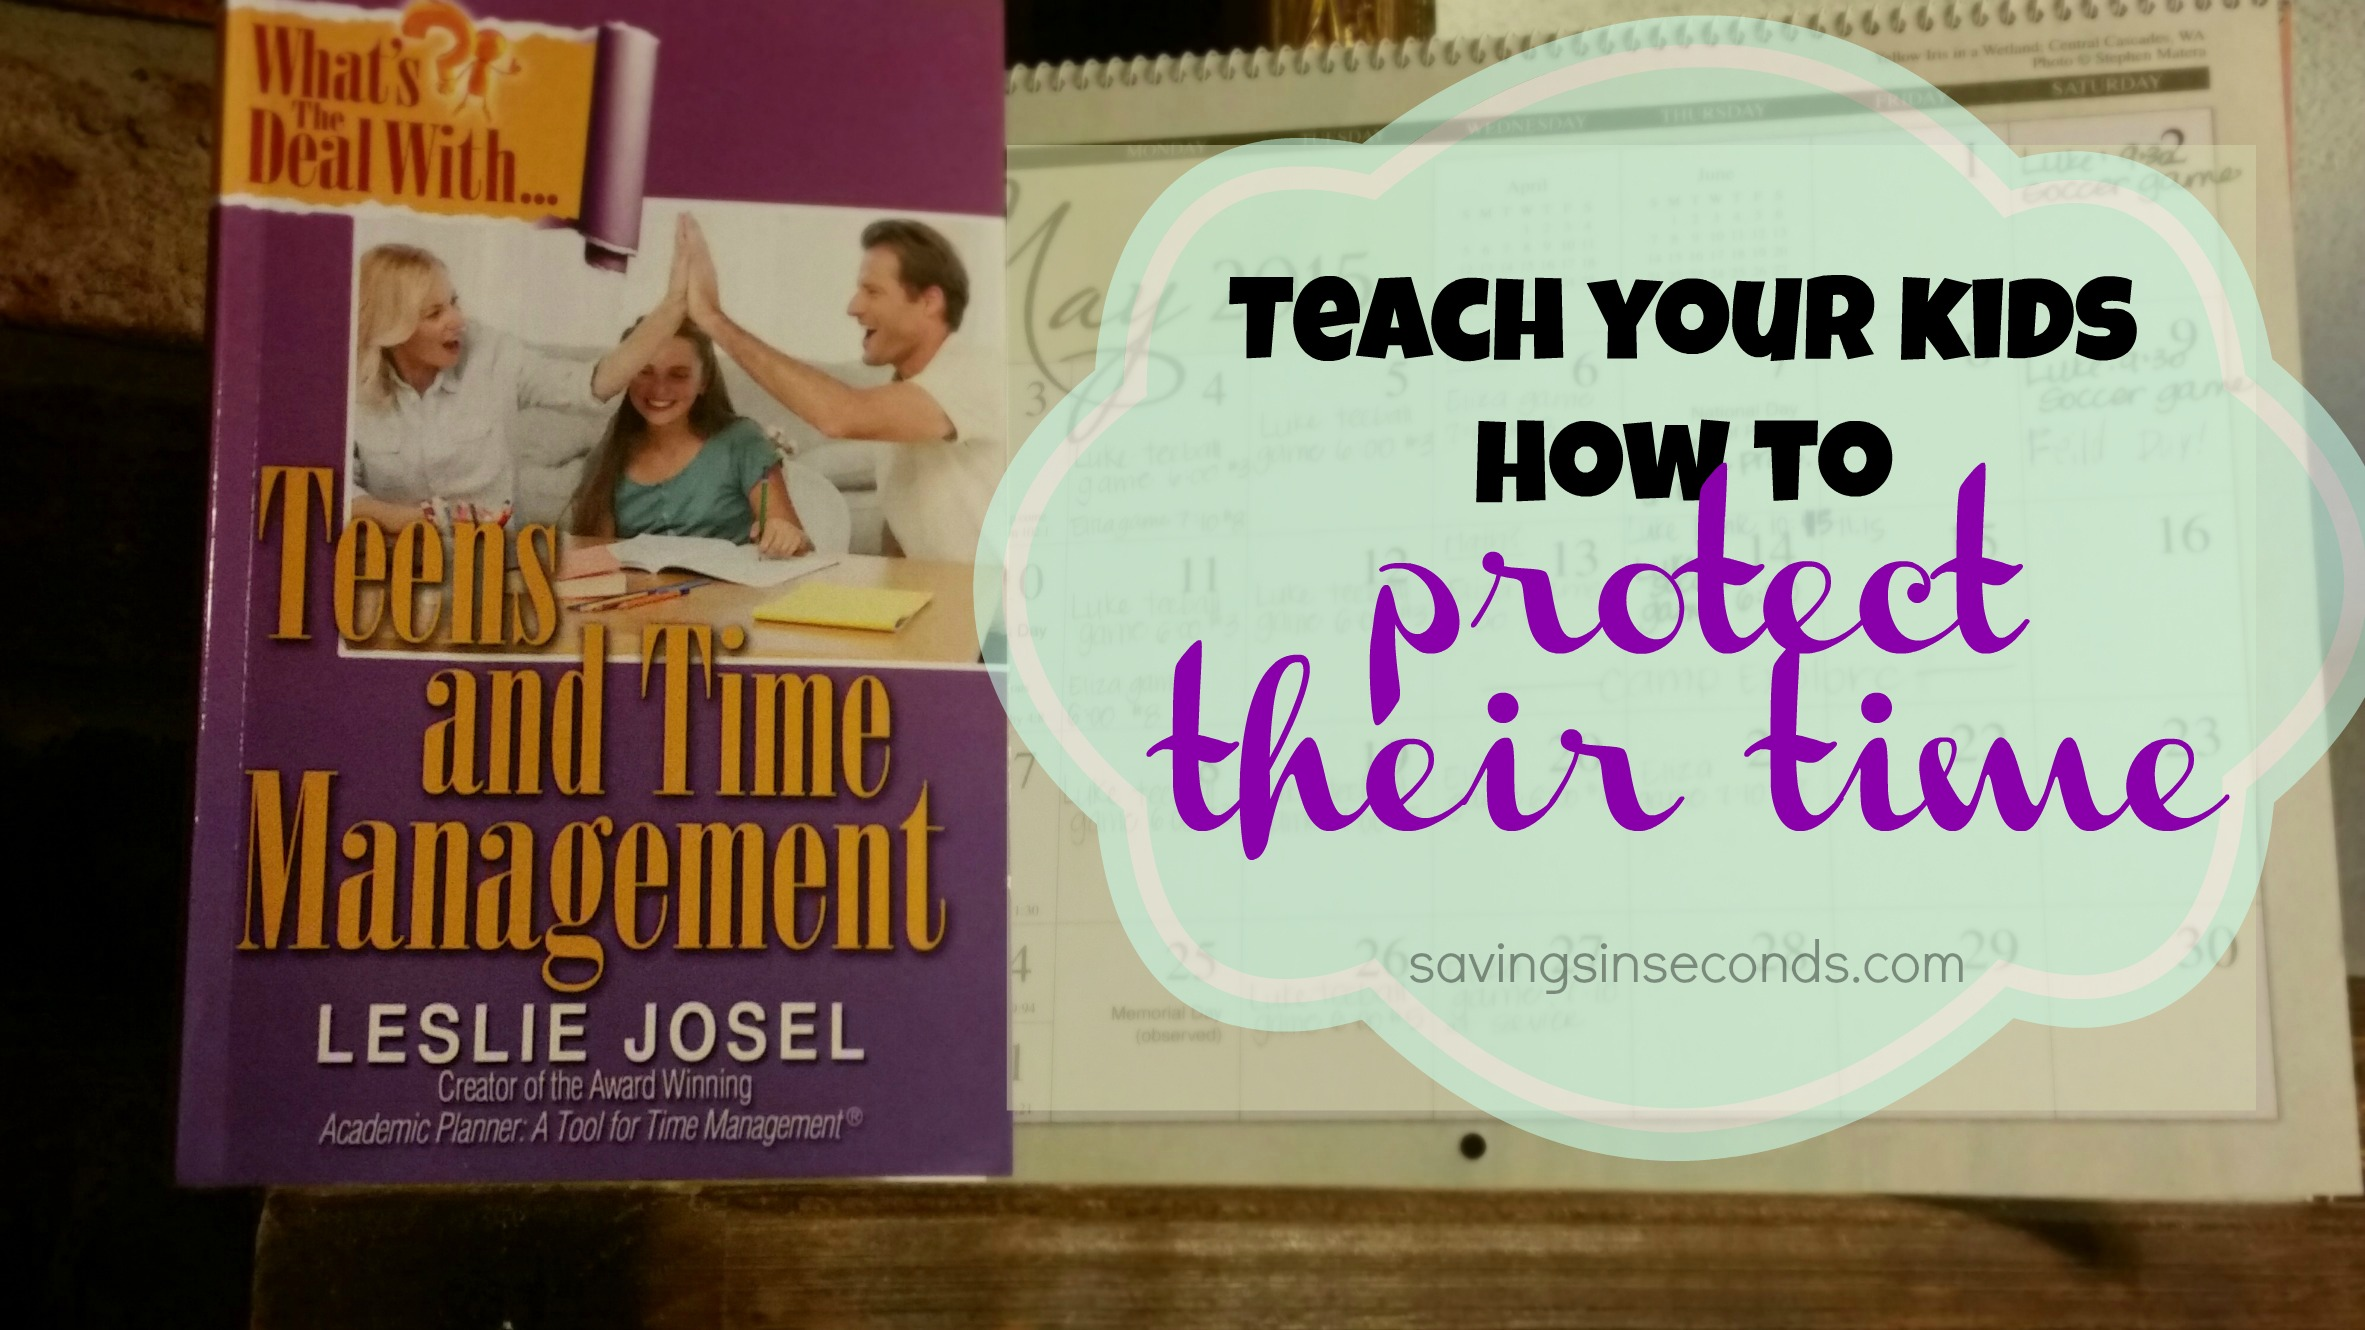 Teens and Time Management - learn how to make it work! #teensandtime #ad savingsinseconds.com